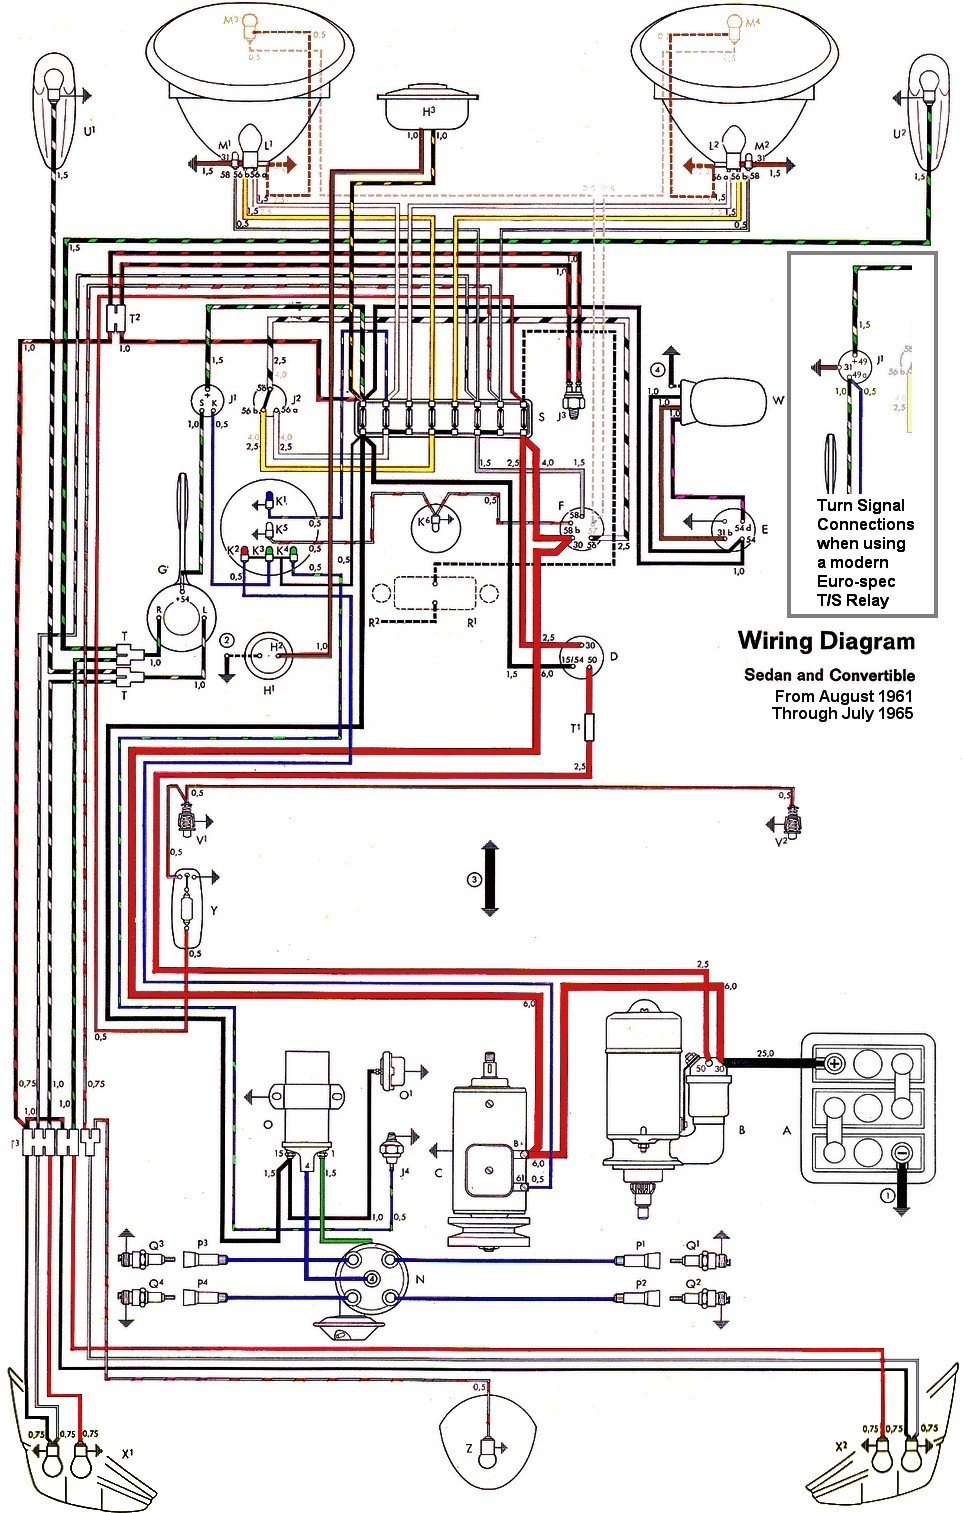 bug_62 65withinset wiring diagram vw beetle sedan and convertible 1961 1965 vw 1972 VW Beetle Wiring Diagram at panicattacktreatment.co